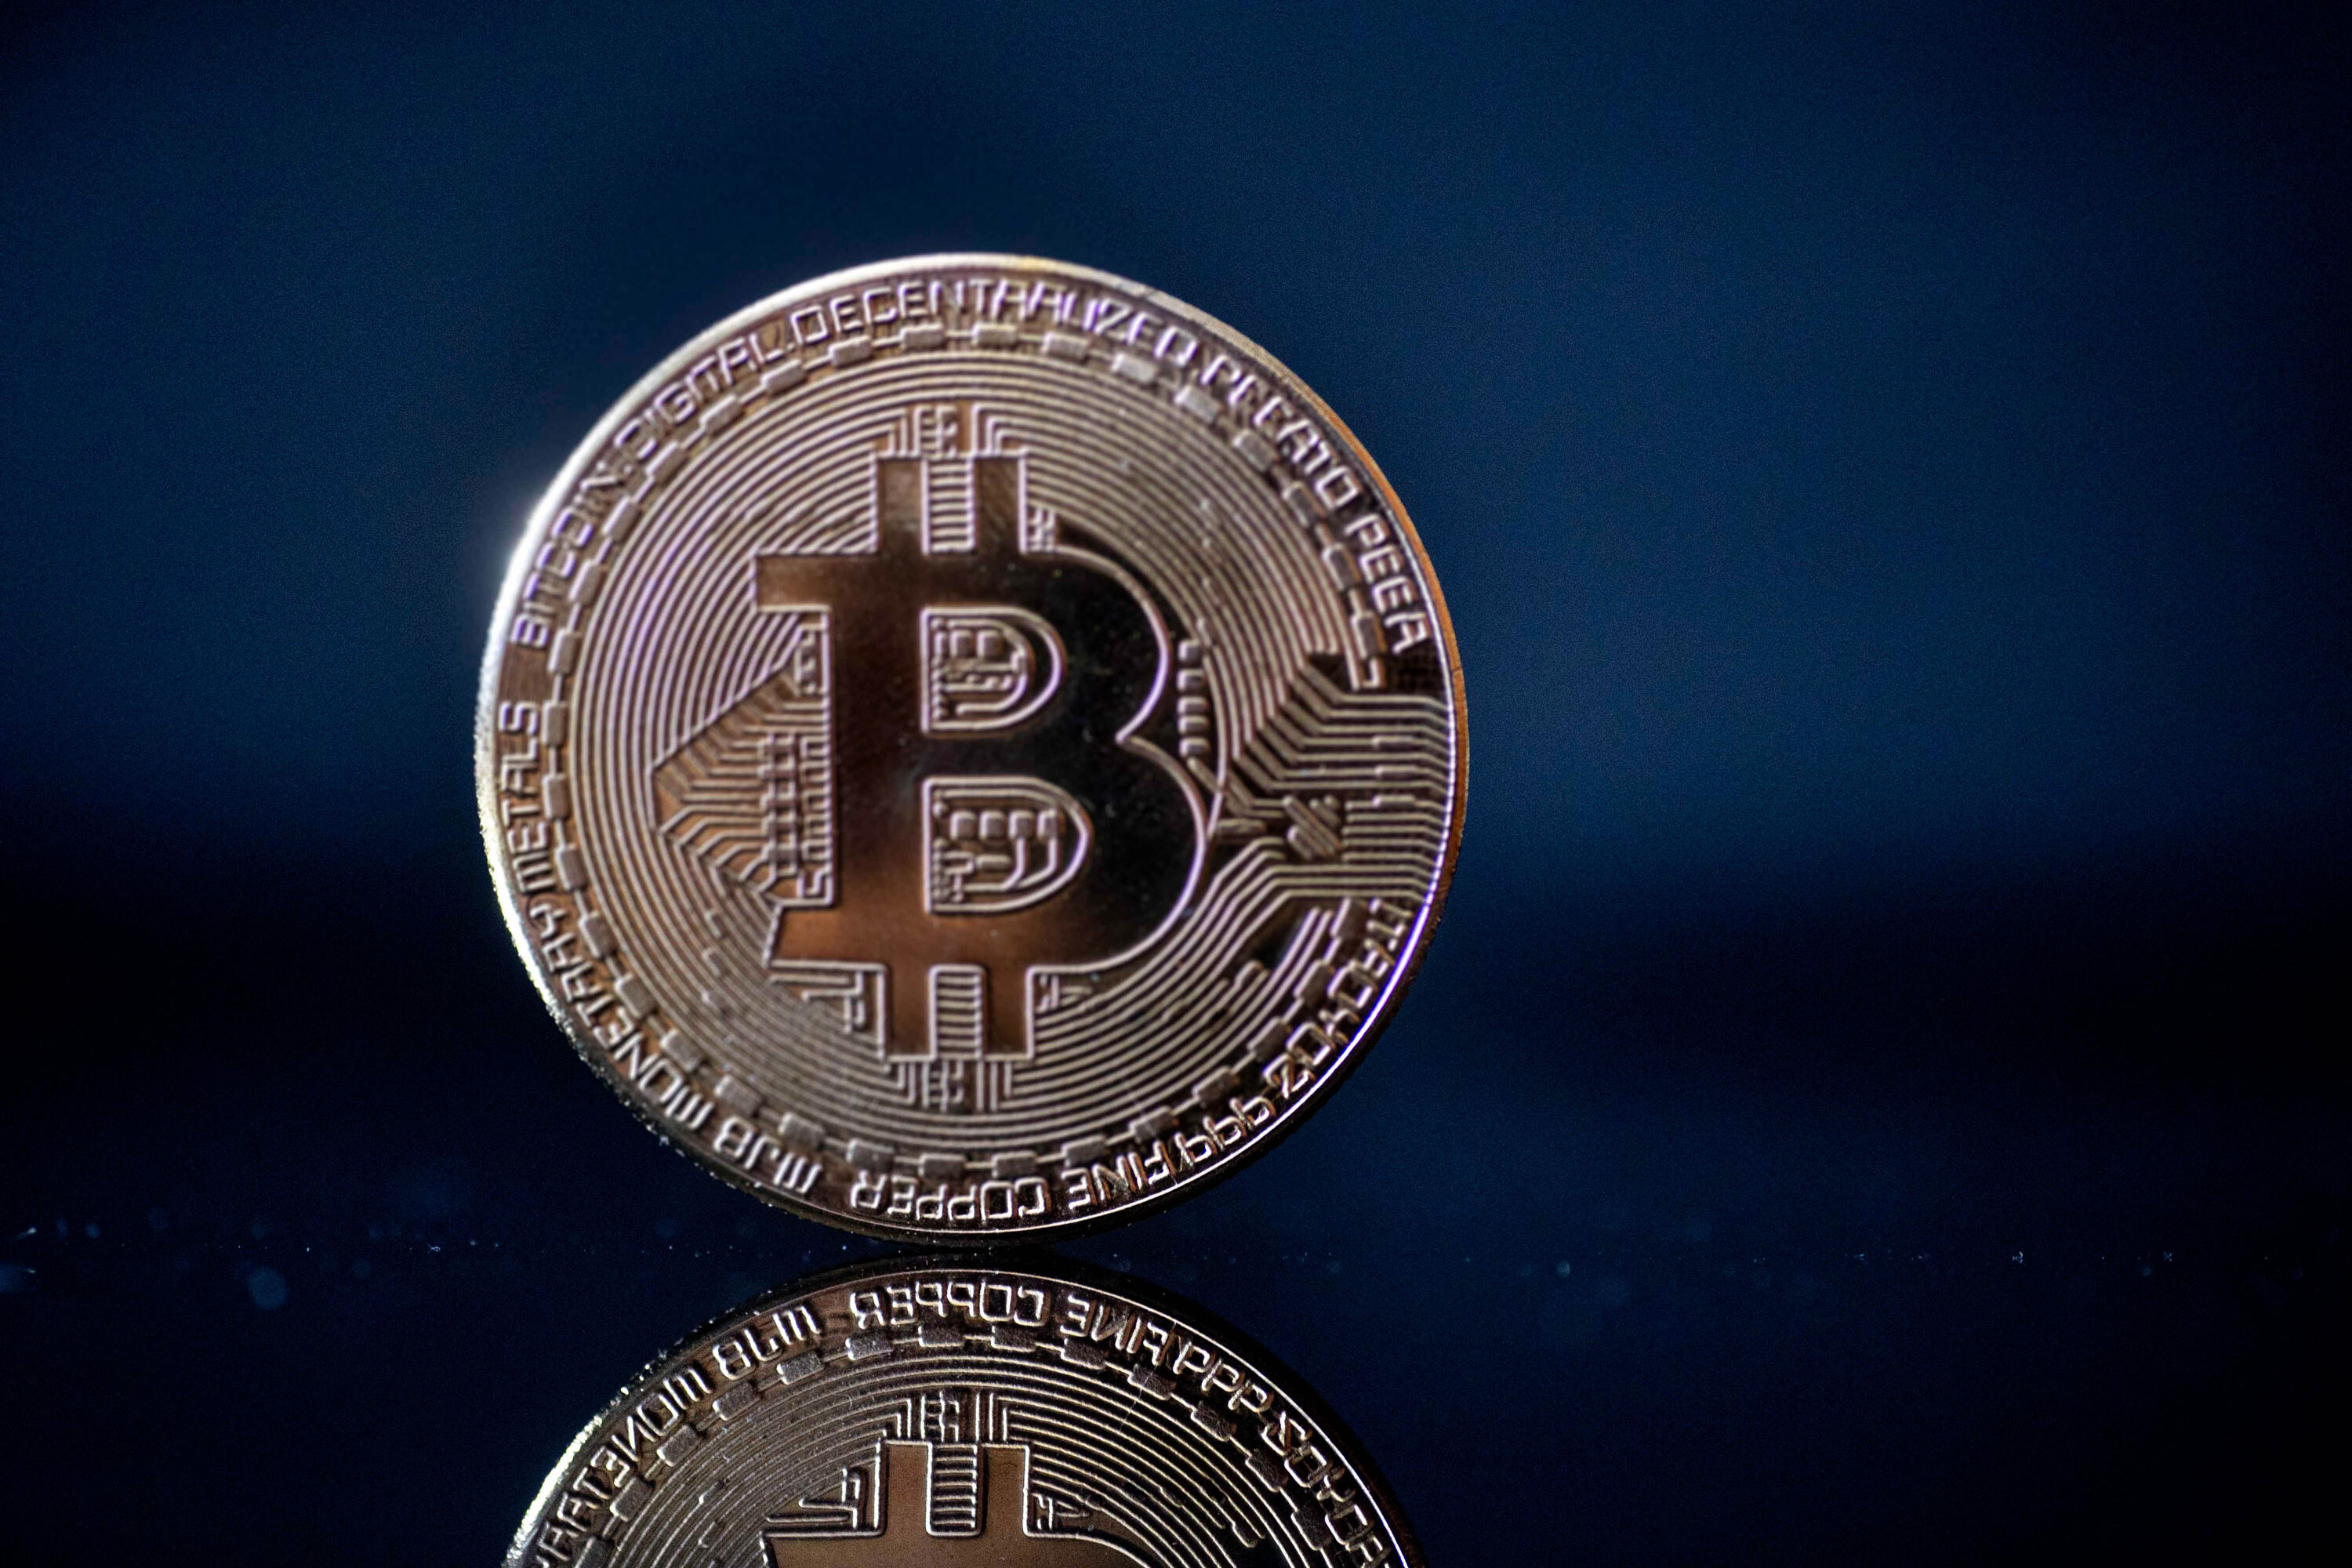 Bitcoin's price rises above $50,000 for the first time since May